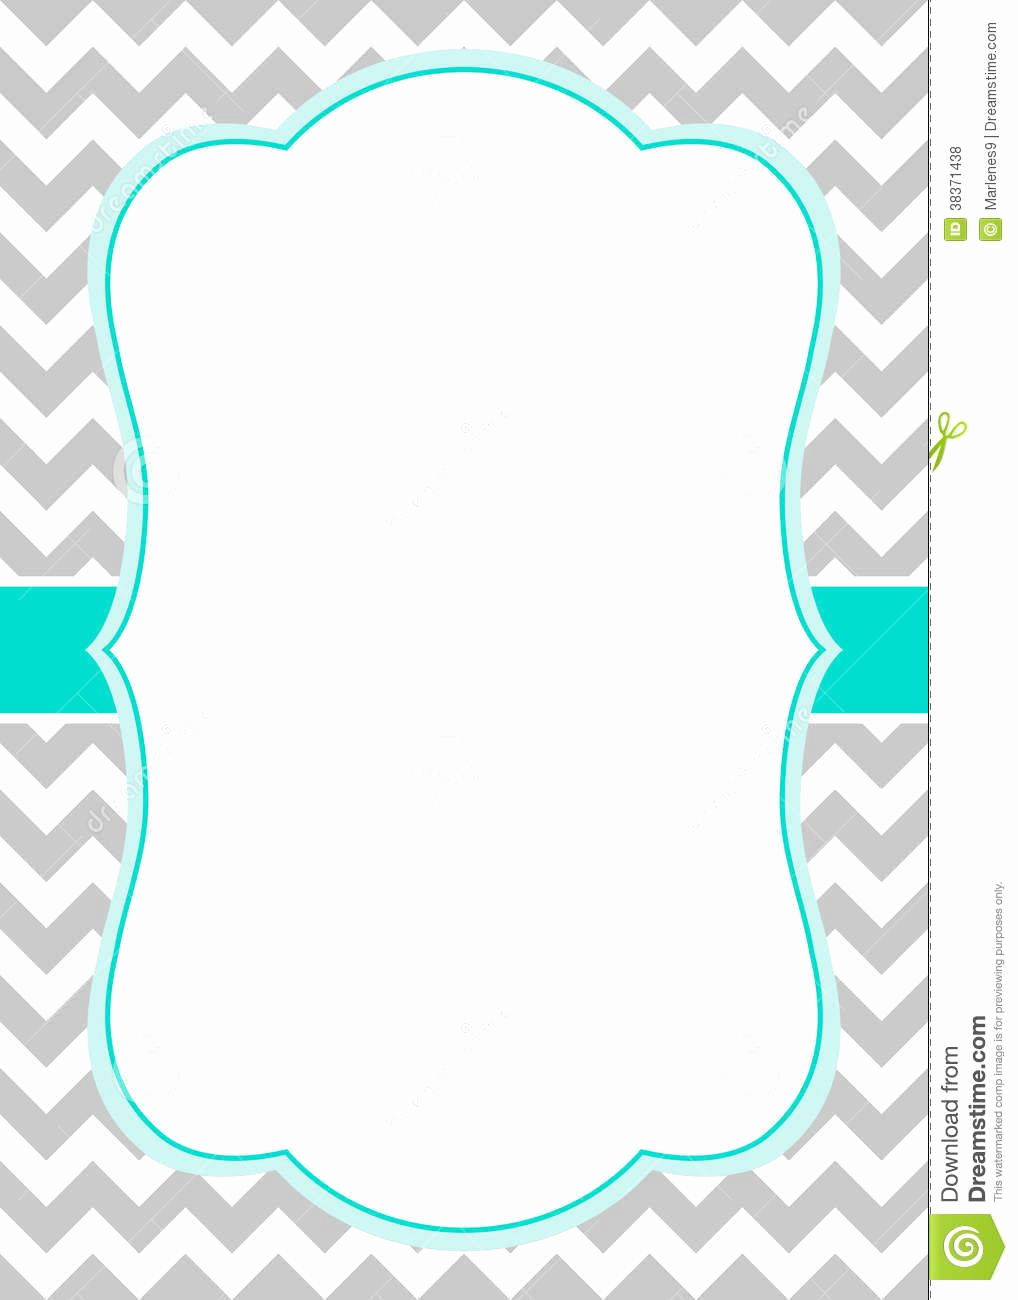 Free Art Party Invitation Templates Best Of Free Chevron Border Templateadmin Admin